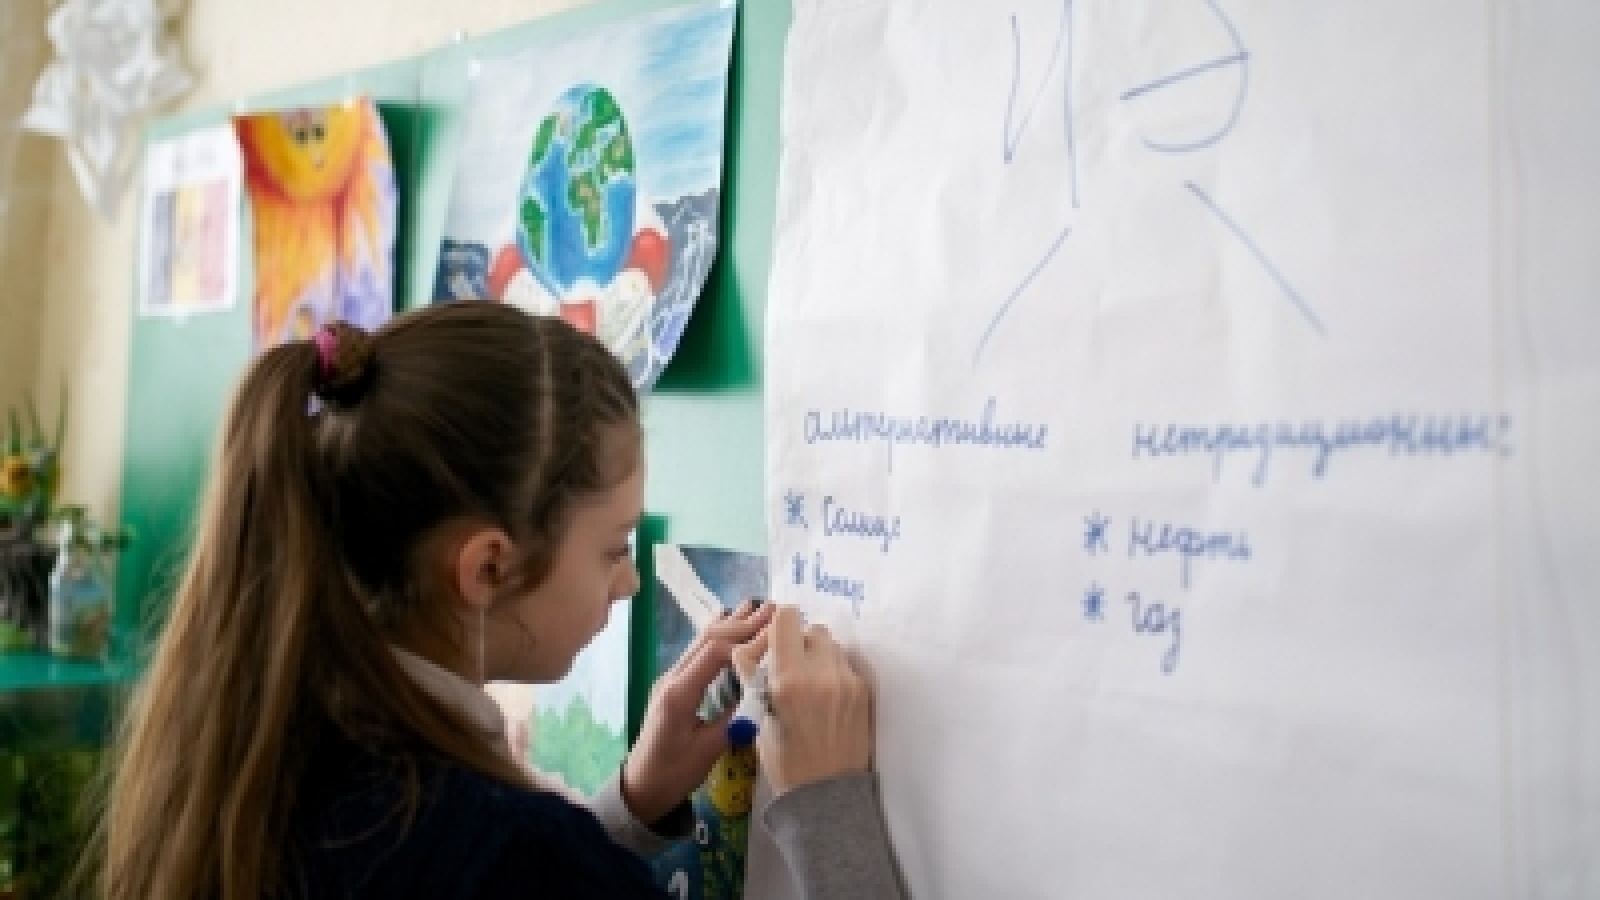 Schools in Ukraine and Belarus invited to participate in cultural competition